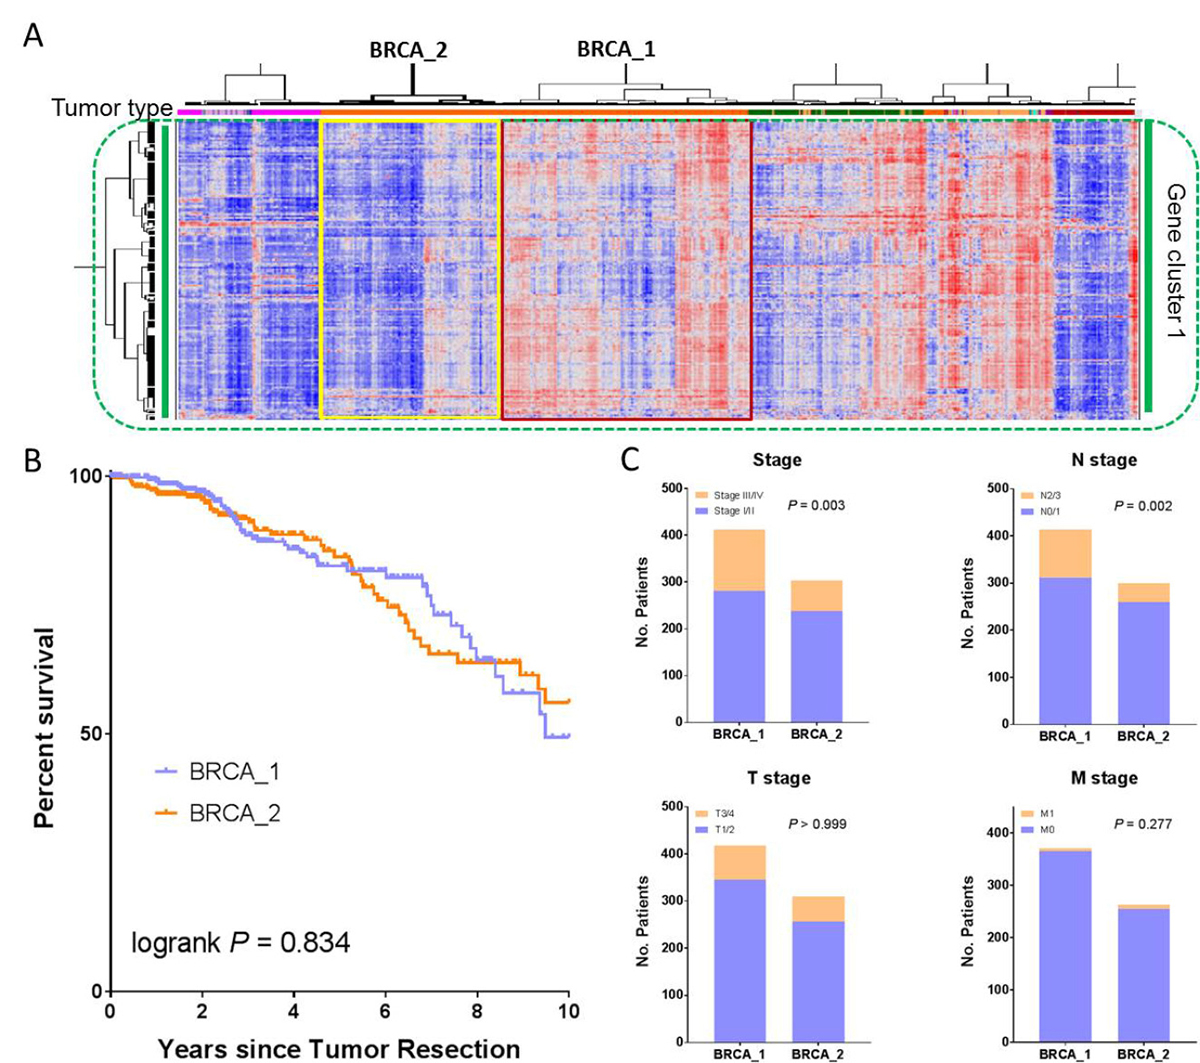 Clinicopathological correlation of BRCA patients with differentially expressed immune gene signatures.